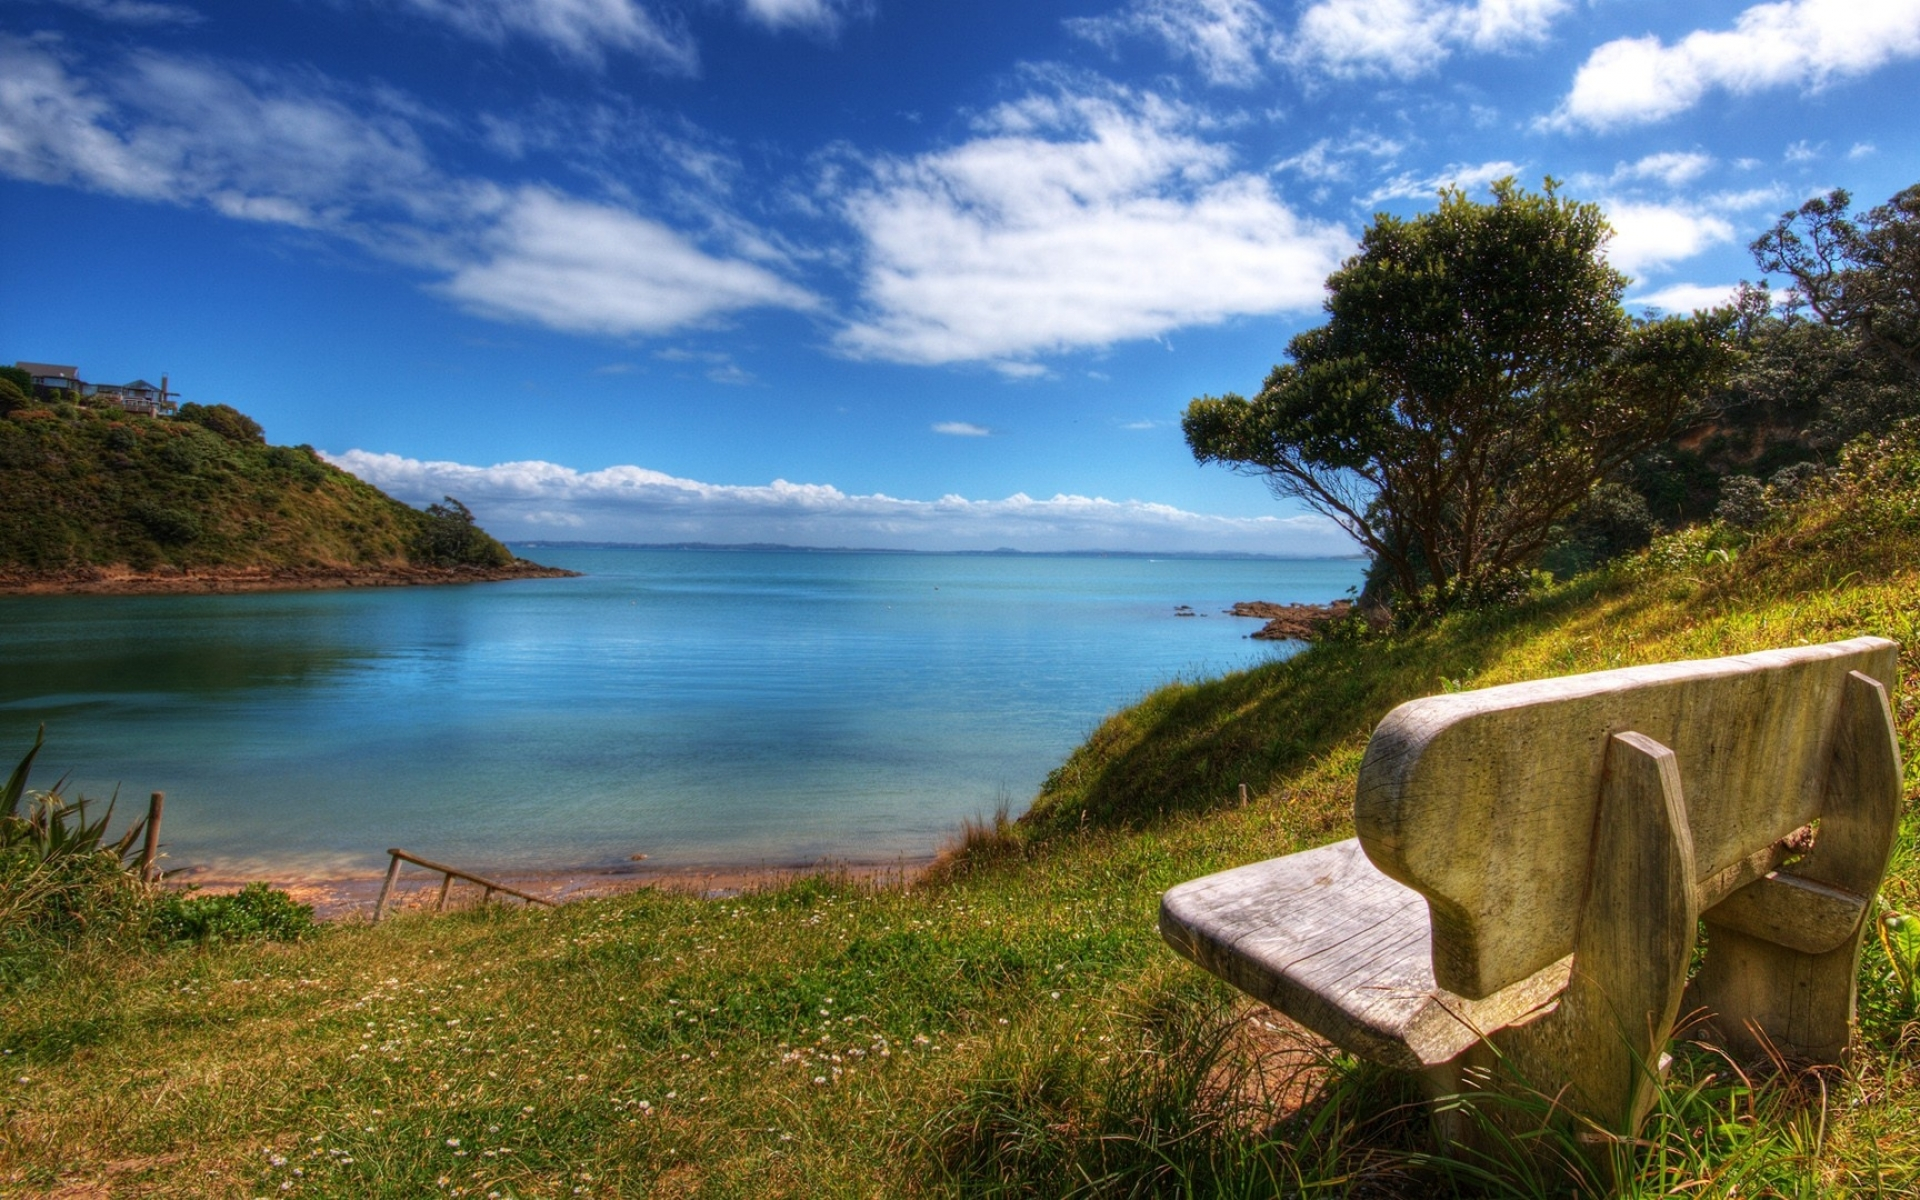 Lovely Ocean Scenery & Bench Wallpapers And Stock Photos - Beautiful Nature , HD Wallpaper & Backgrounds